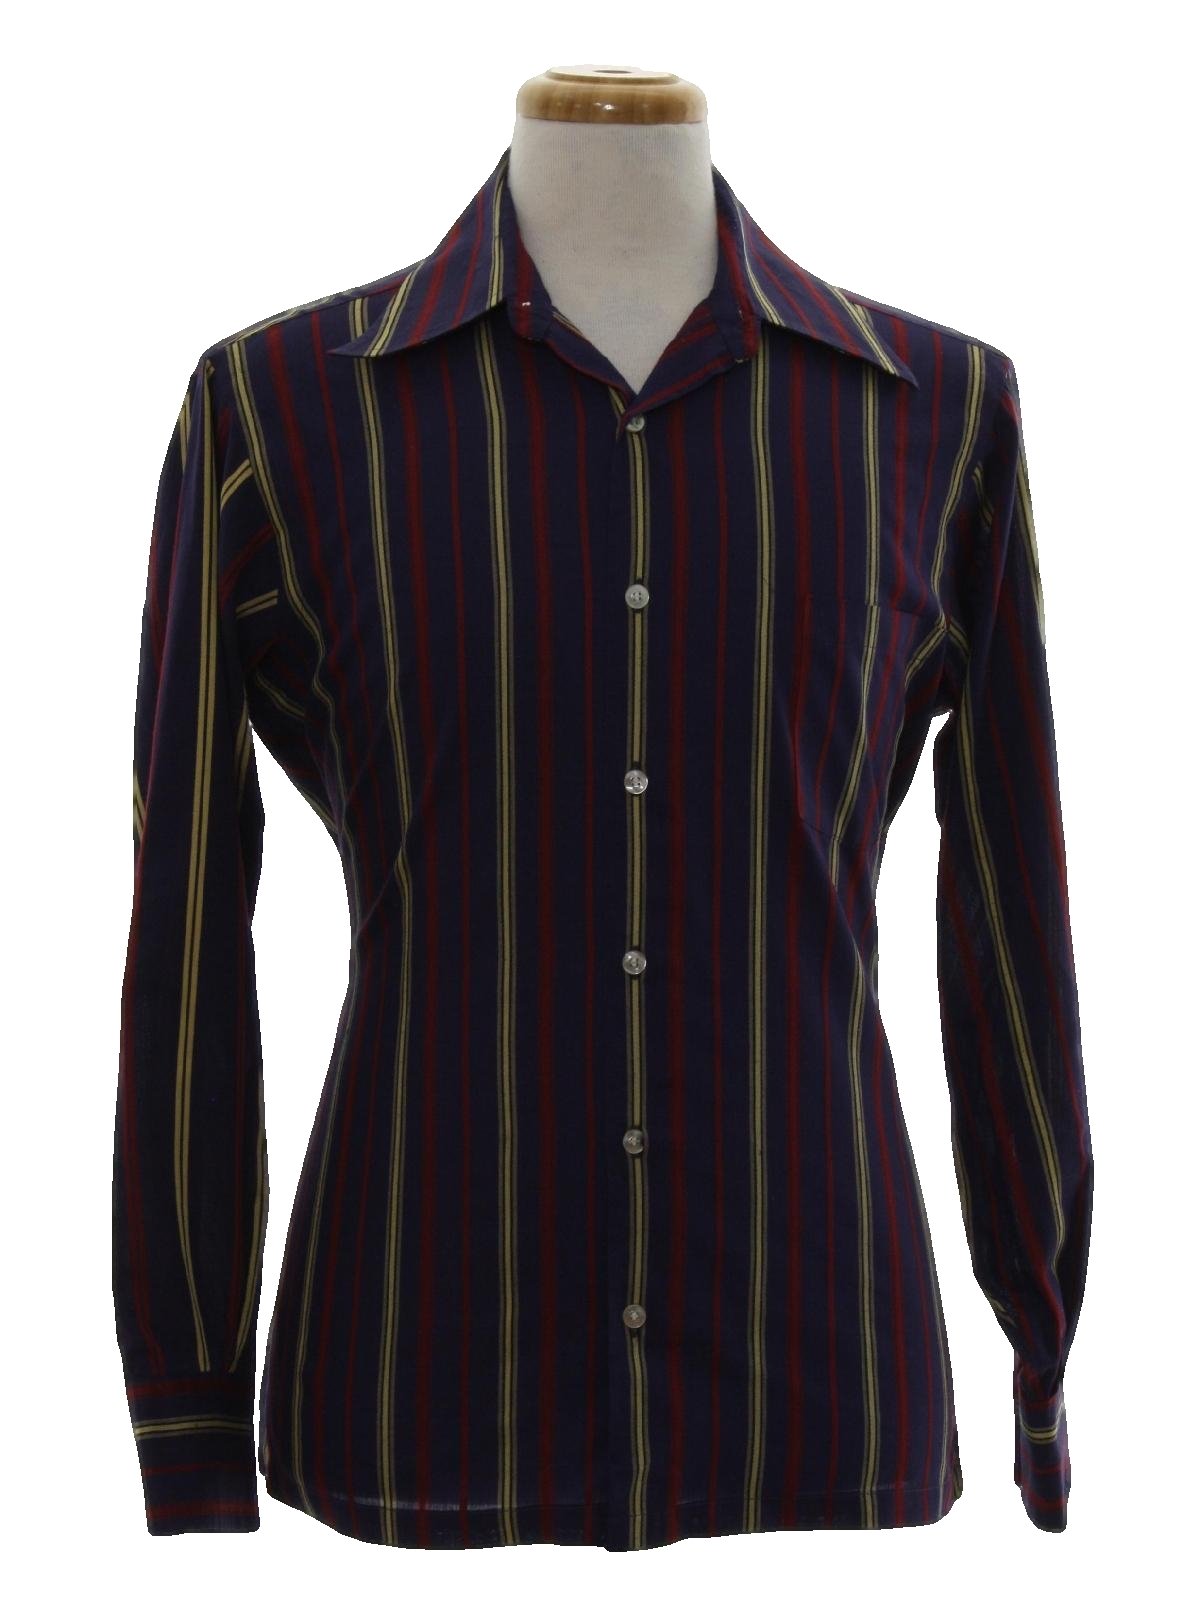 excello men 60s -excello- mens grey and pink cotton rayon blend short sleeve bowling shirt with angled pink collar, pink stripe across the chest.